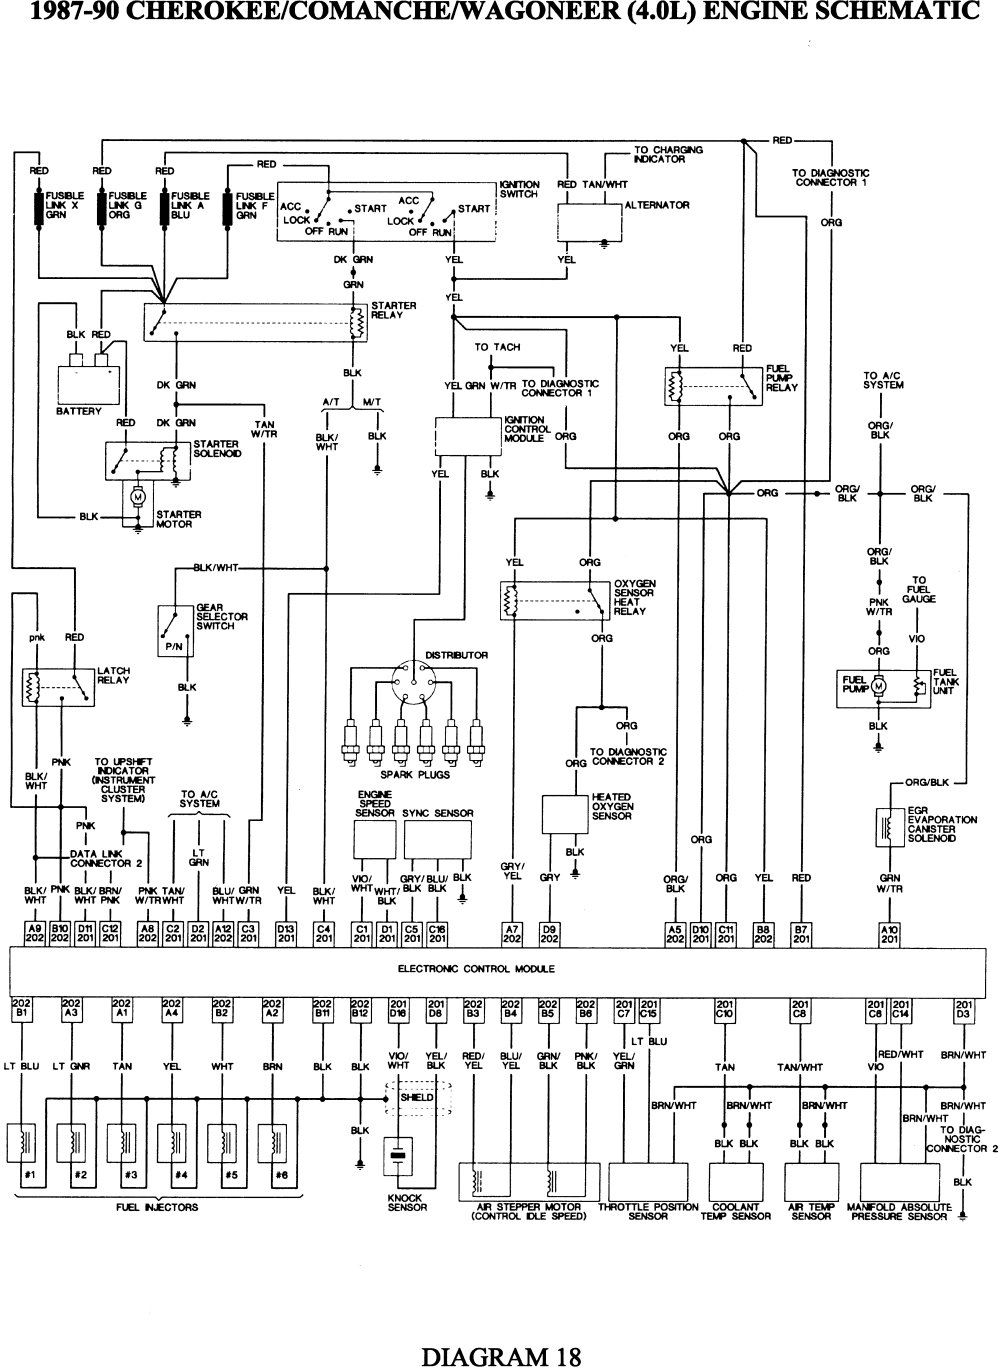 medium resolution of 1997 jeep wrangler electrical diagram wiring diagram user 1997 jeep wrangler alternator diagram on jeep wrangler electrical